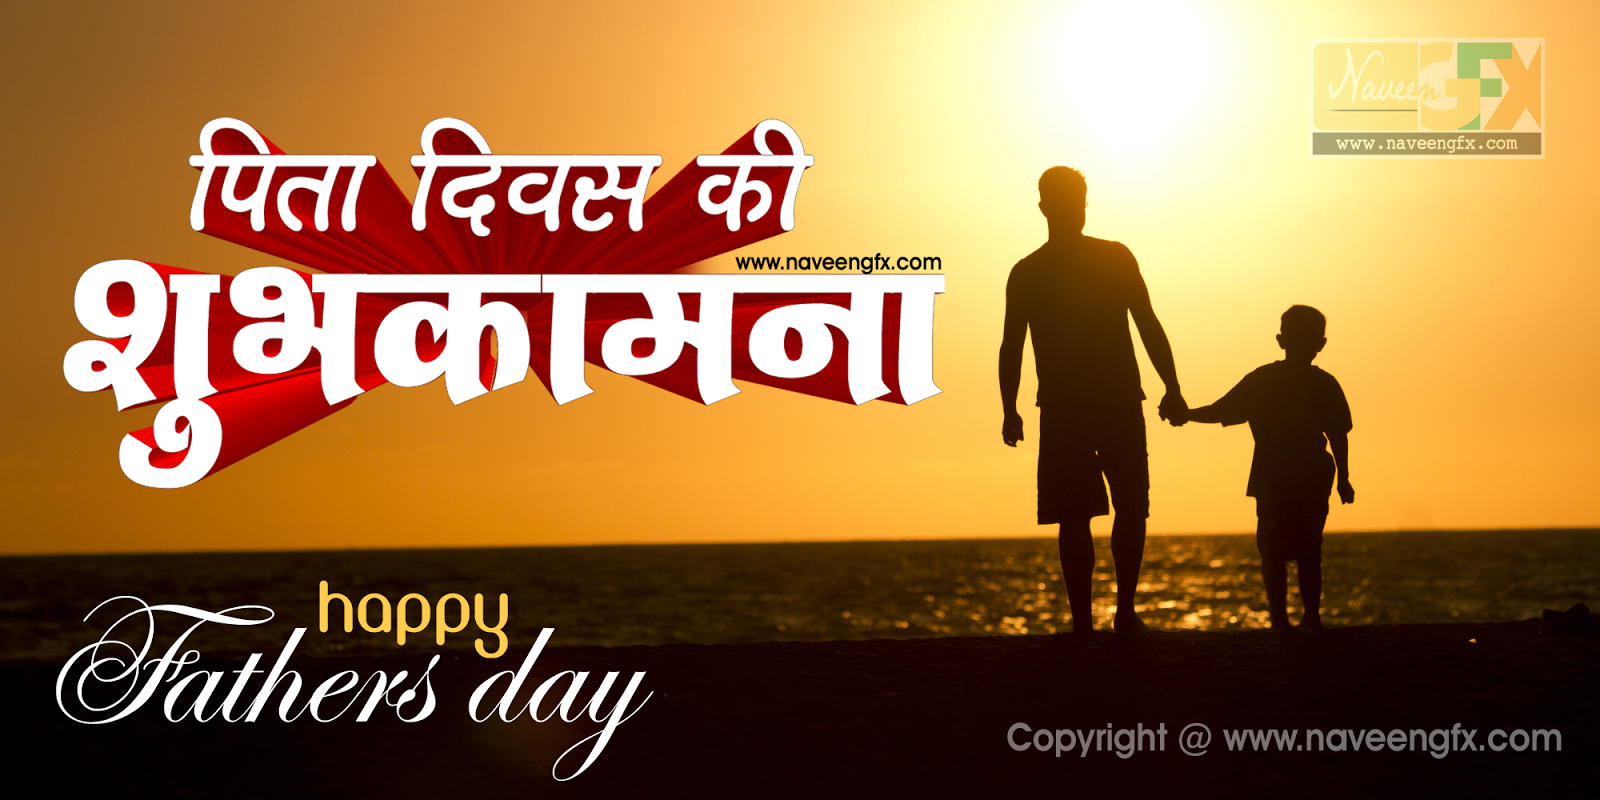 indian wedding cards wordings in hindi%0A happyfathersdayhindiquotesimagesfromson